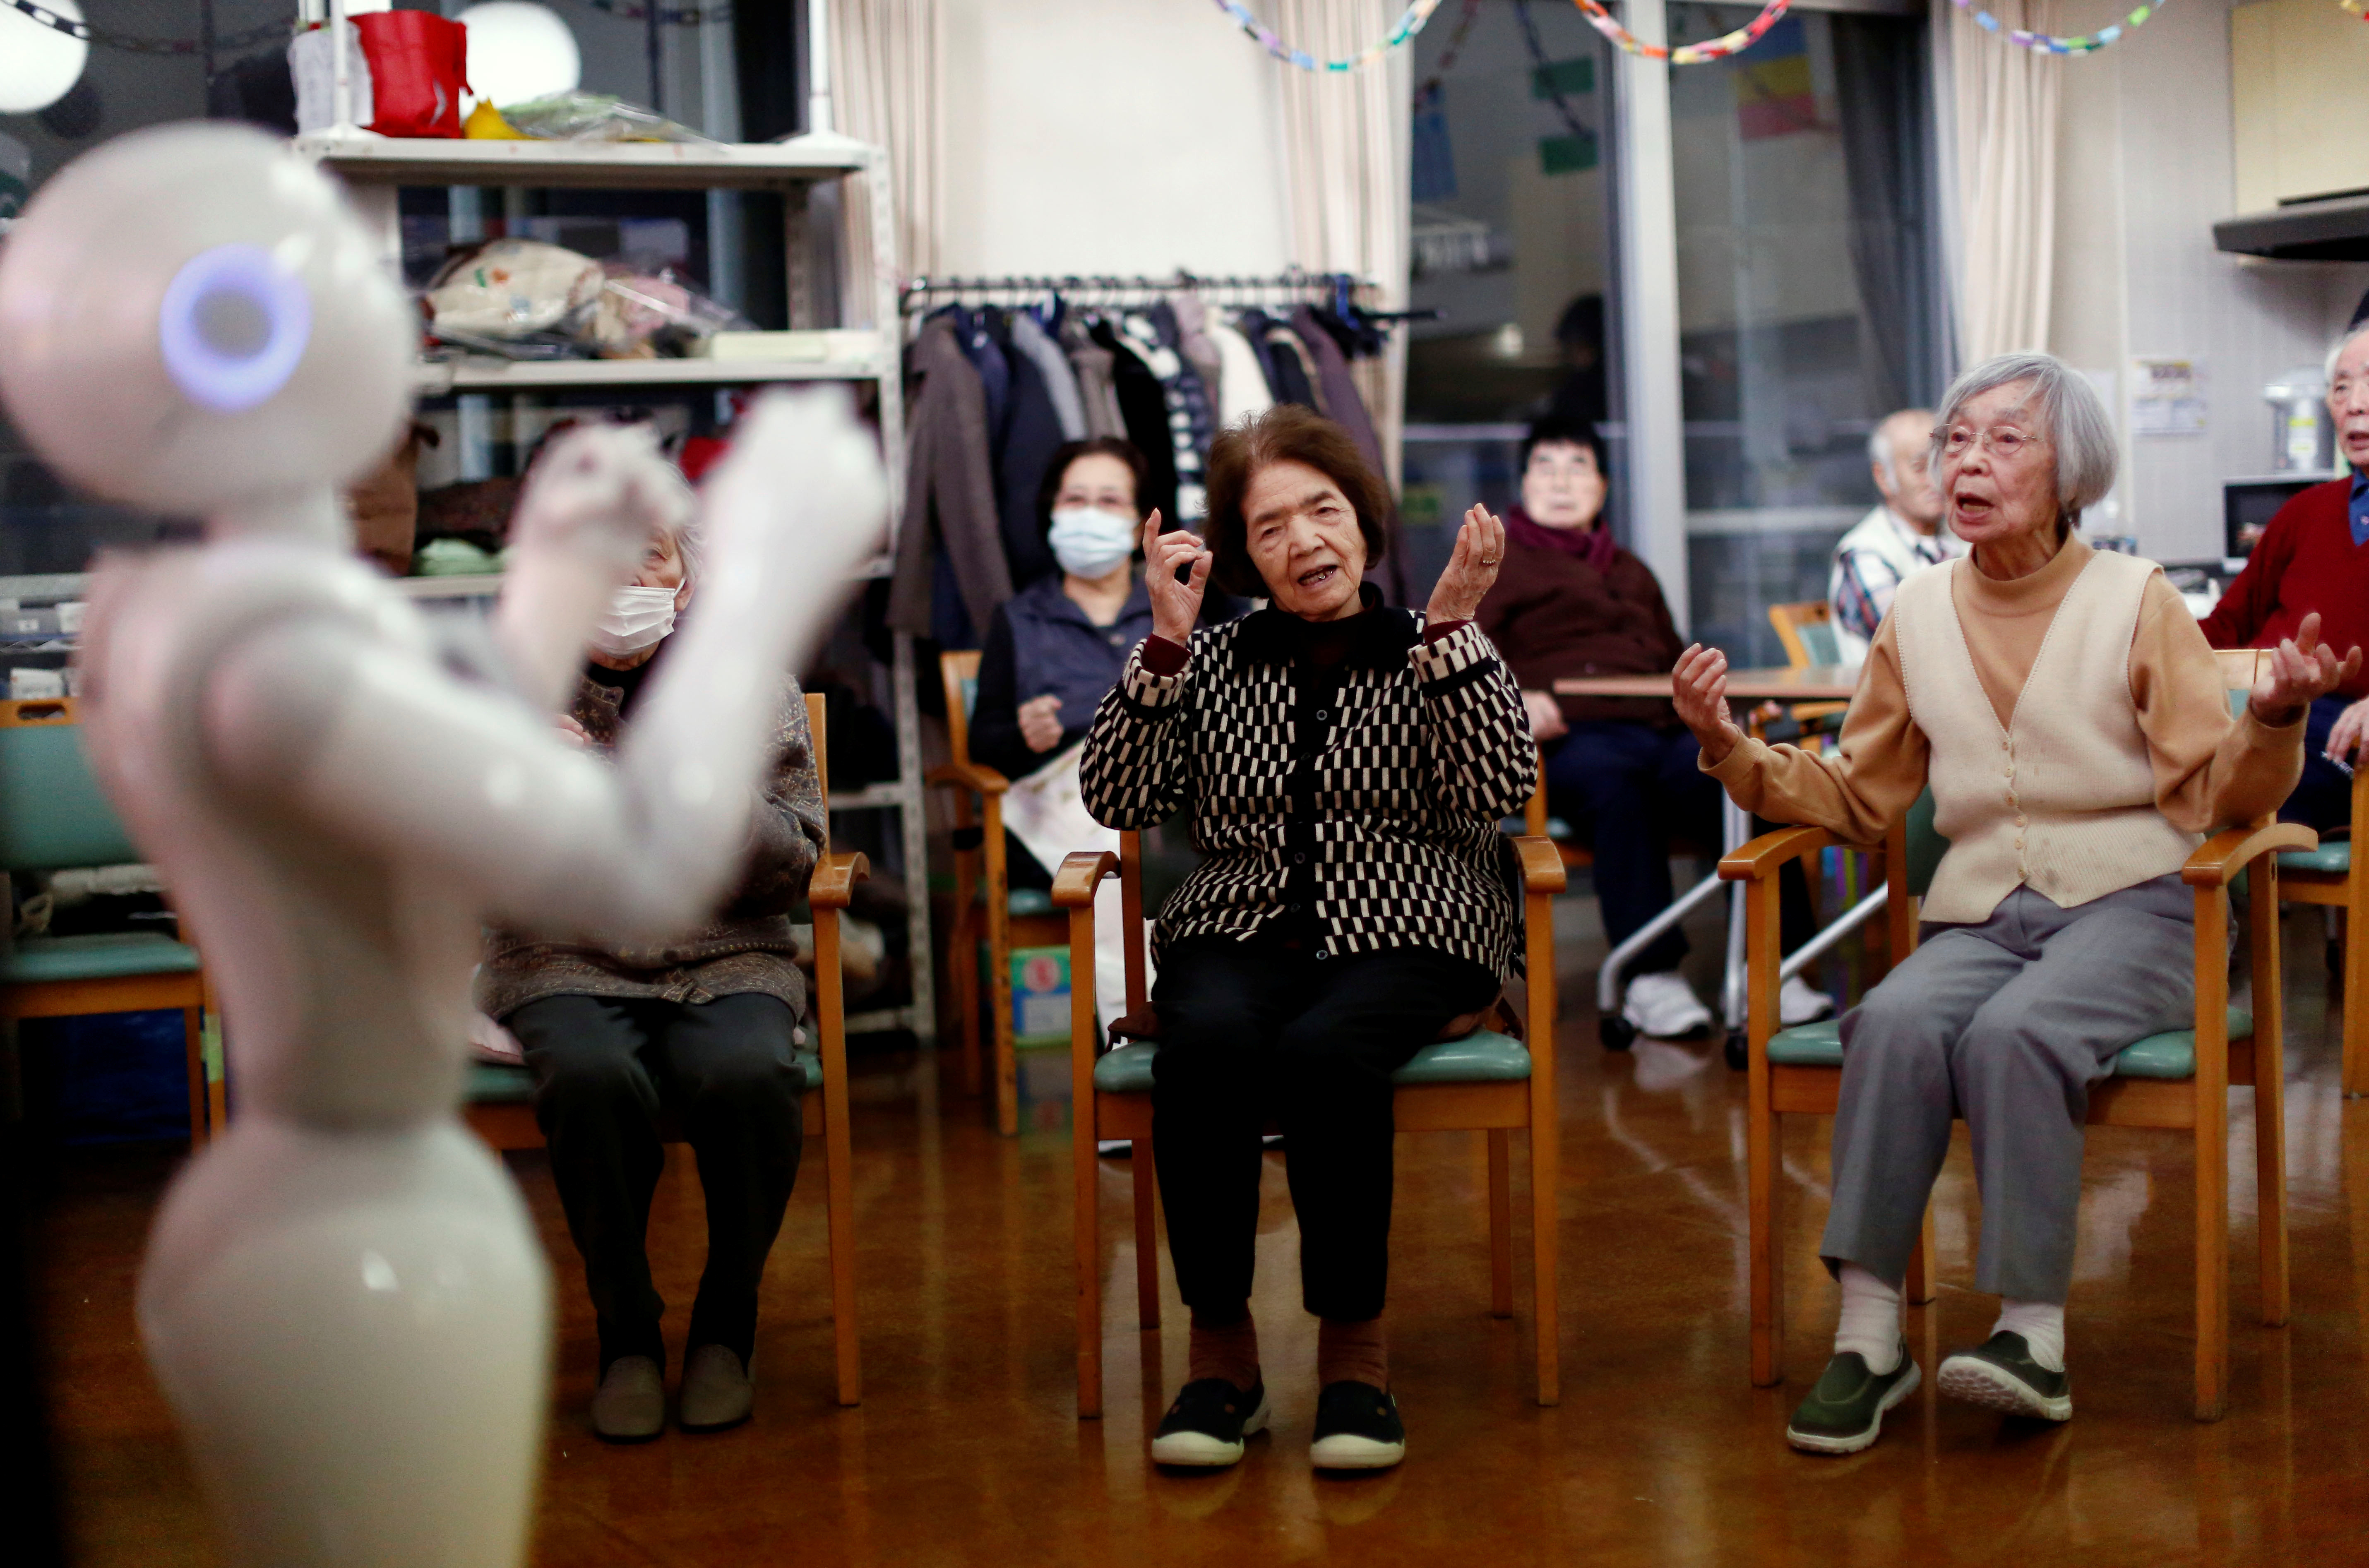 Residents follow moves made by humanoid robot 'Pepper' during an afternoon exercise session at a nursing home in Tokyo.